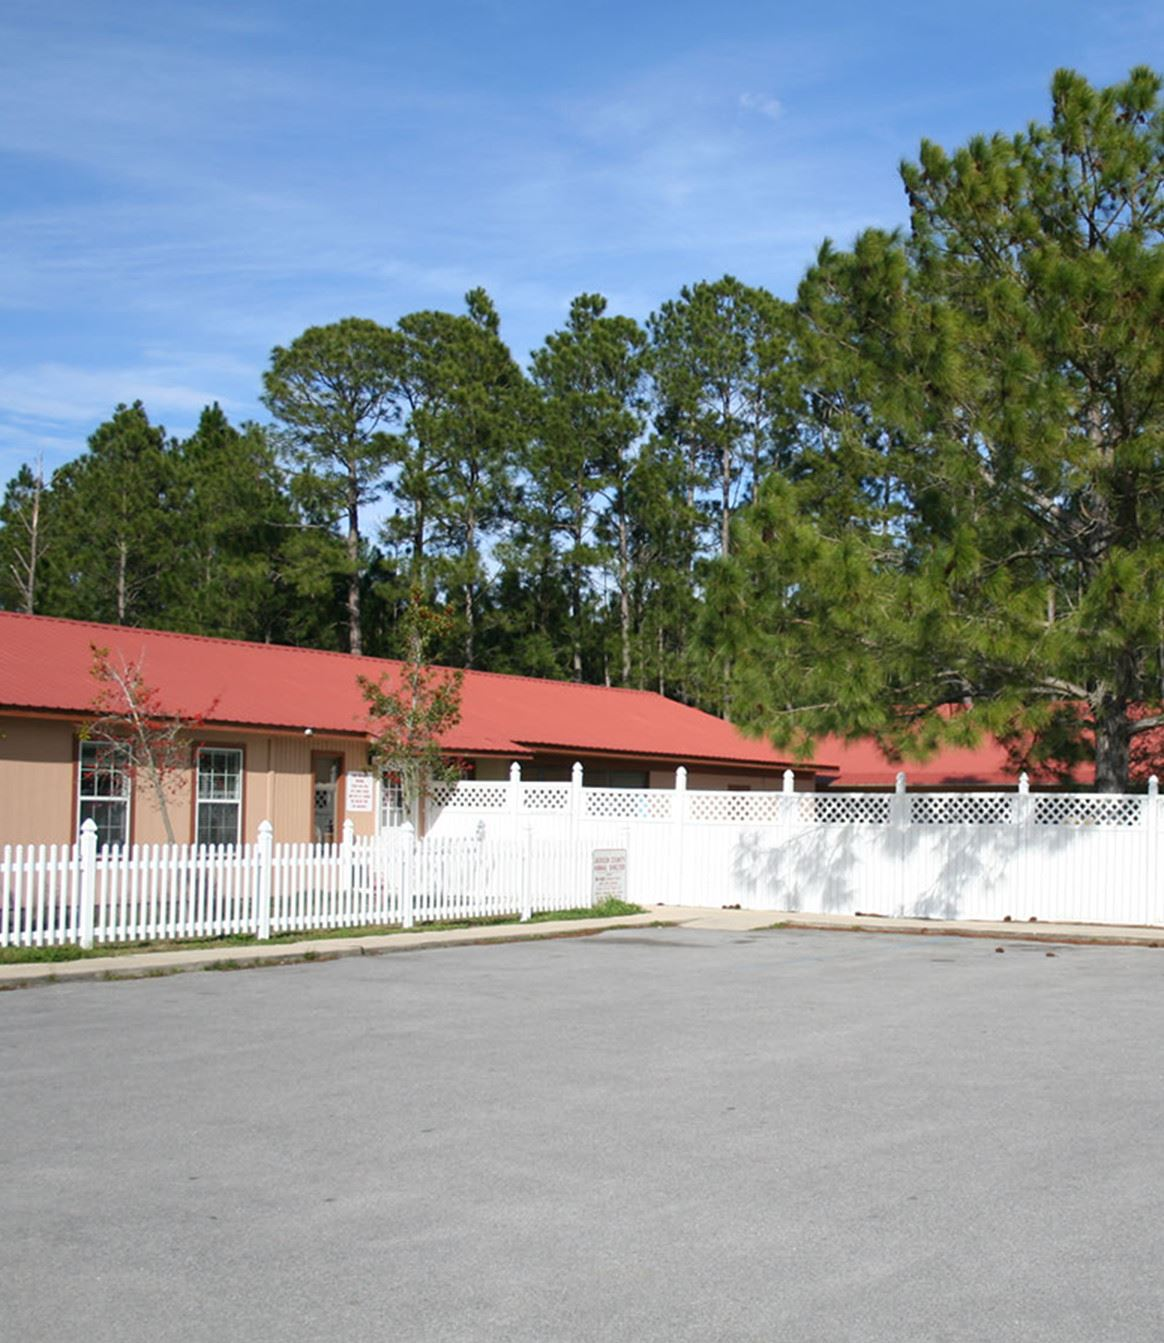 Housing unit and parking lot